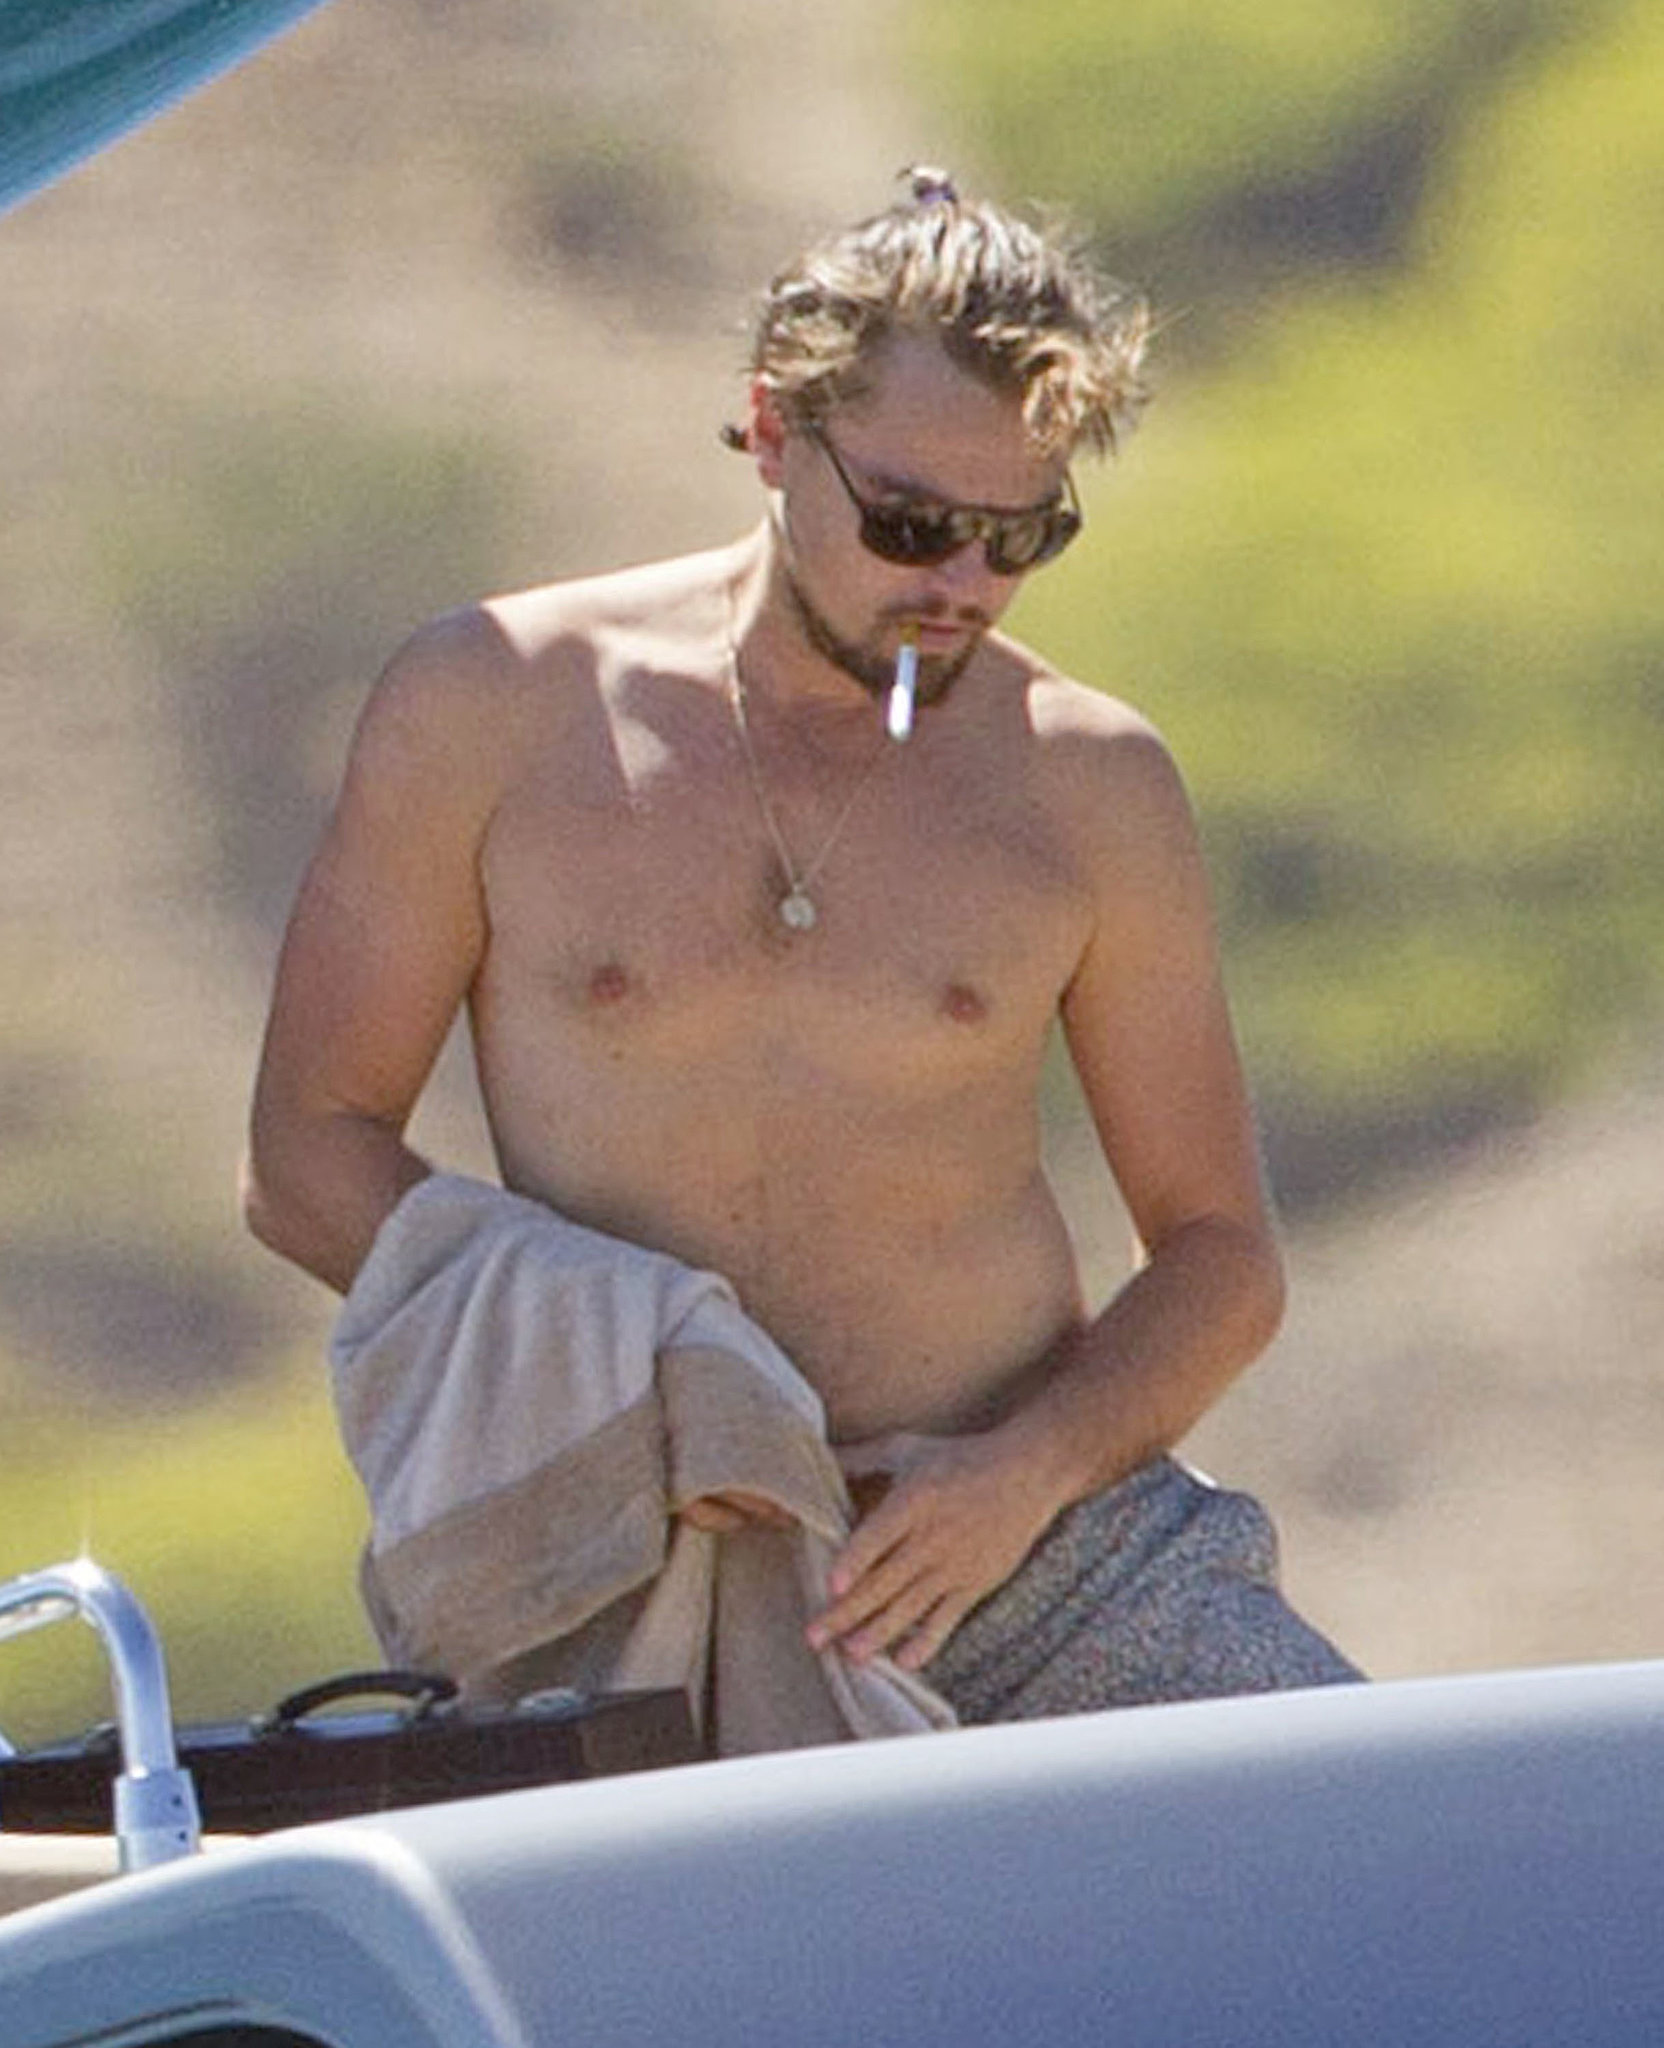 Leonardo DiCaprio went shirtless on a boat when he relaxed in Ibiza in August 2013.